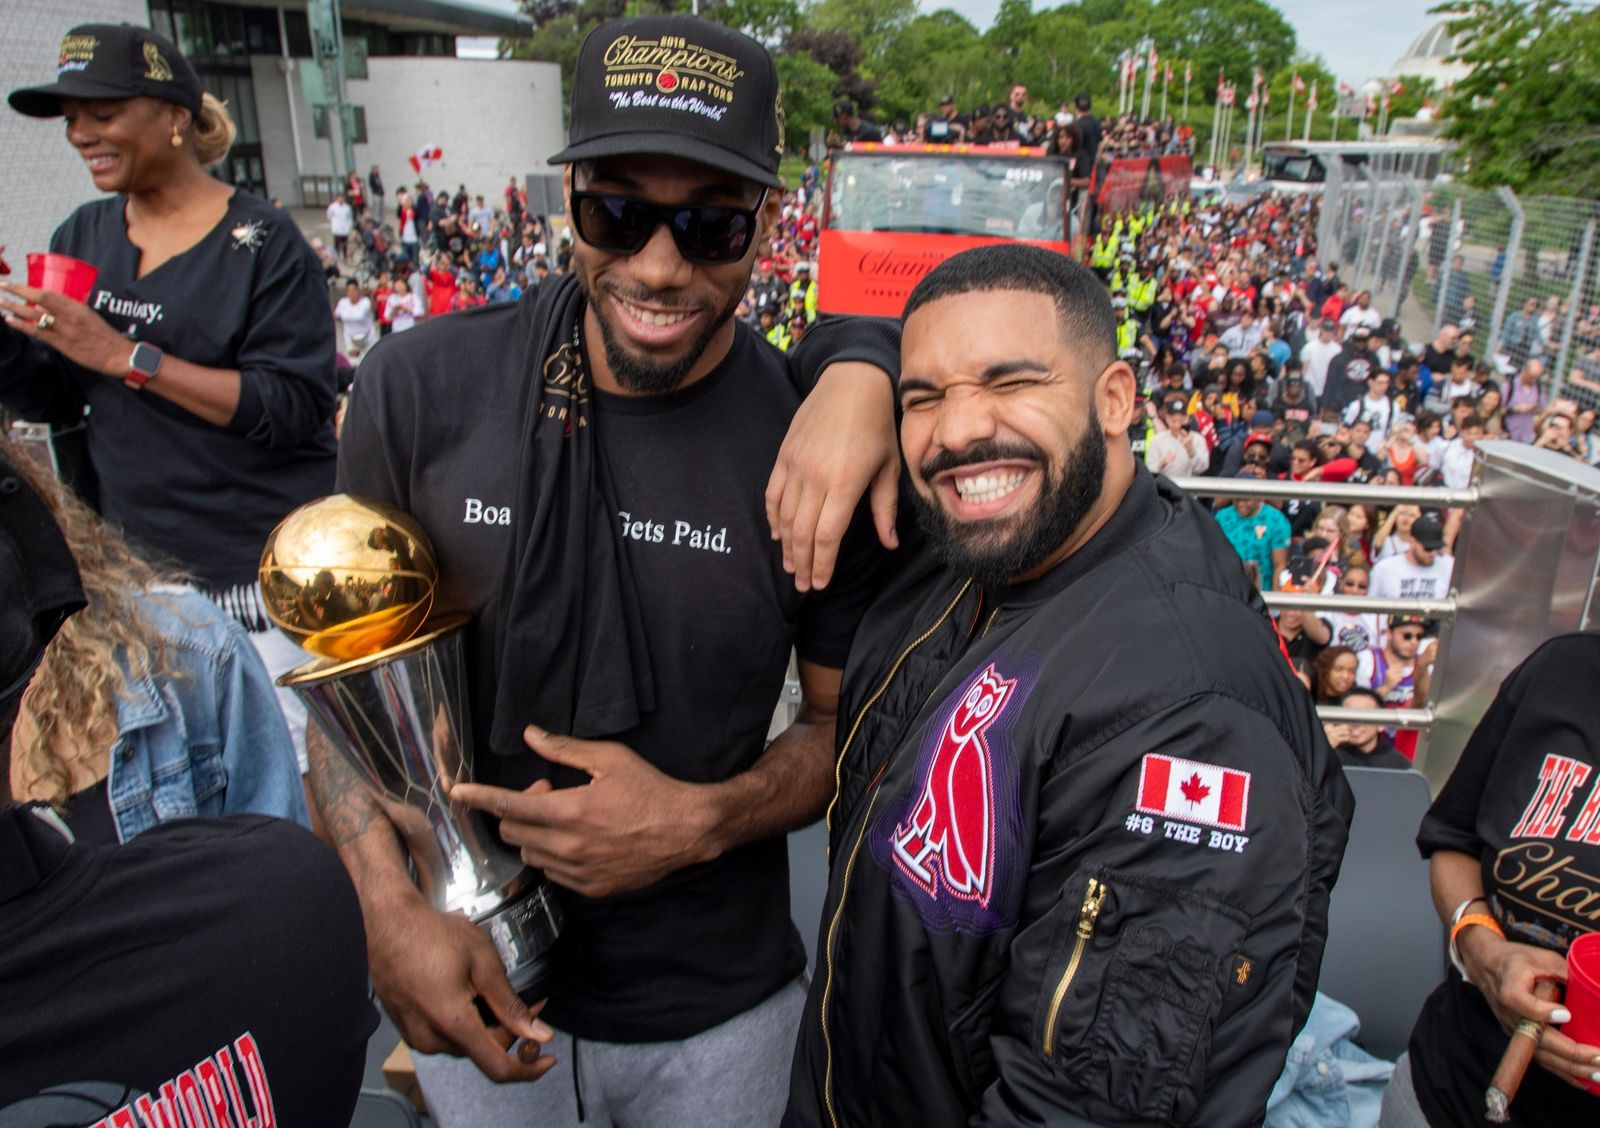 Toronto Raptors' Kawhi Leonard, front left, holds his MVP trophy while posing with rapper/producer Drake as they celebrate during the team's NBA basketball championship parade in Toronto, Monday, June 17, 2019. (Frank Gunn/The Canadian Press via AP)